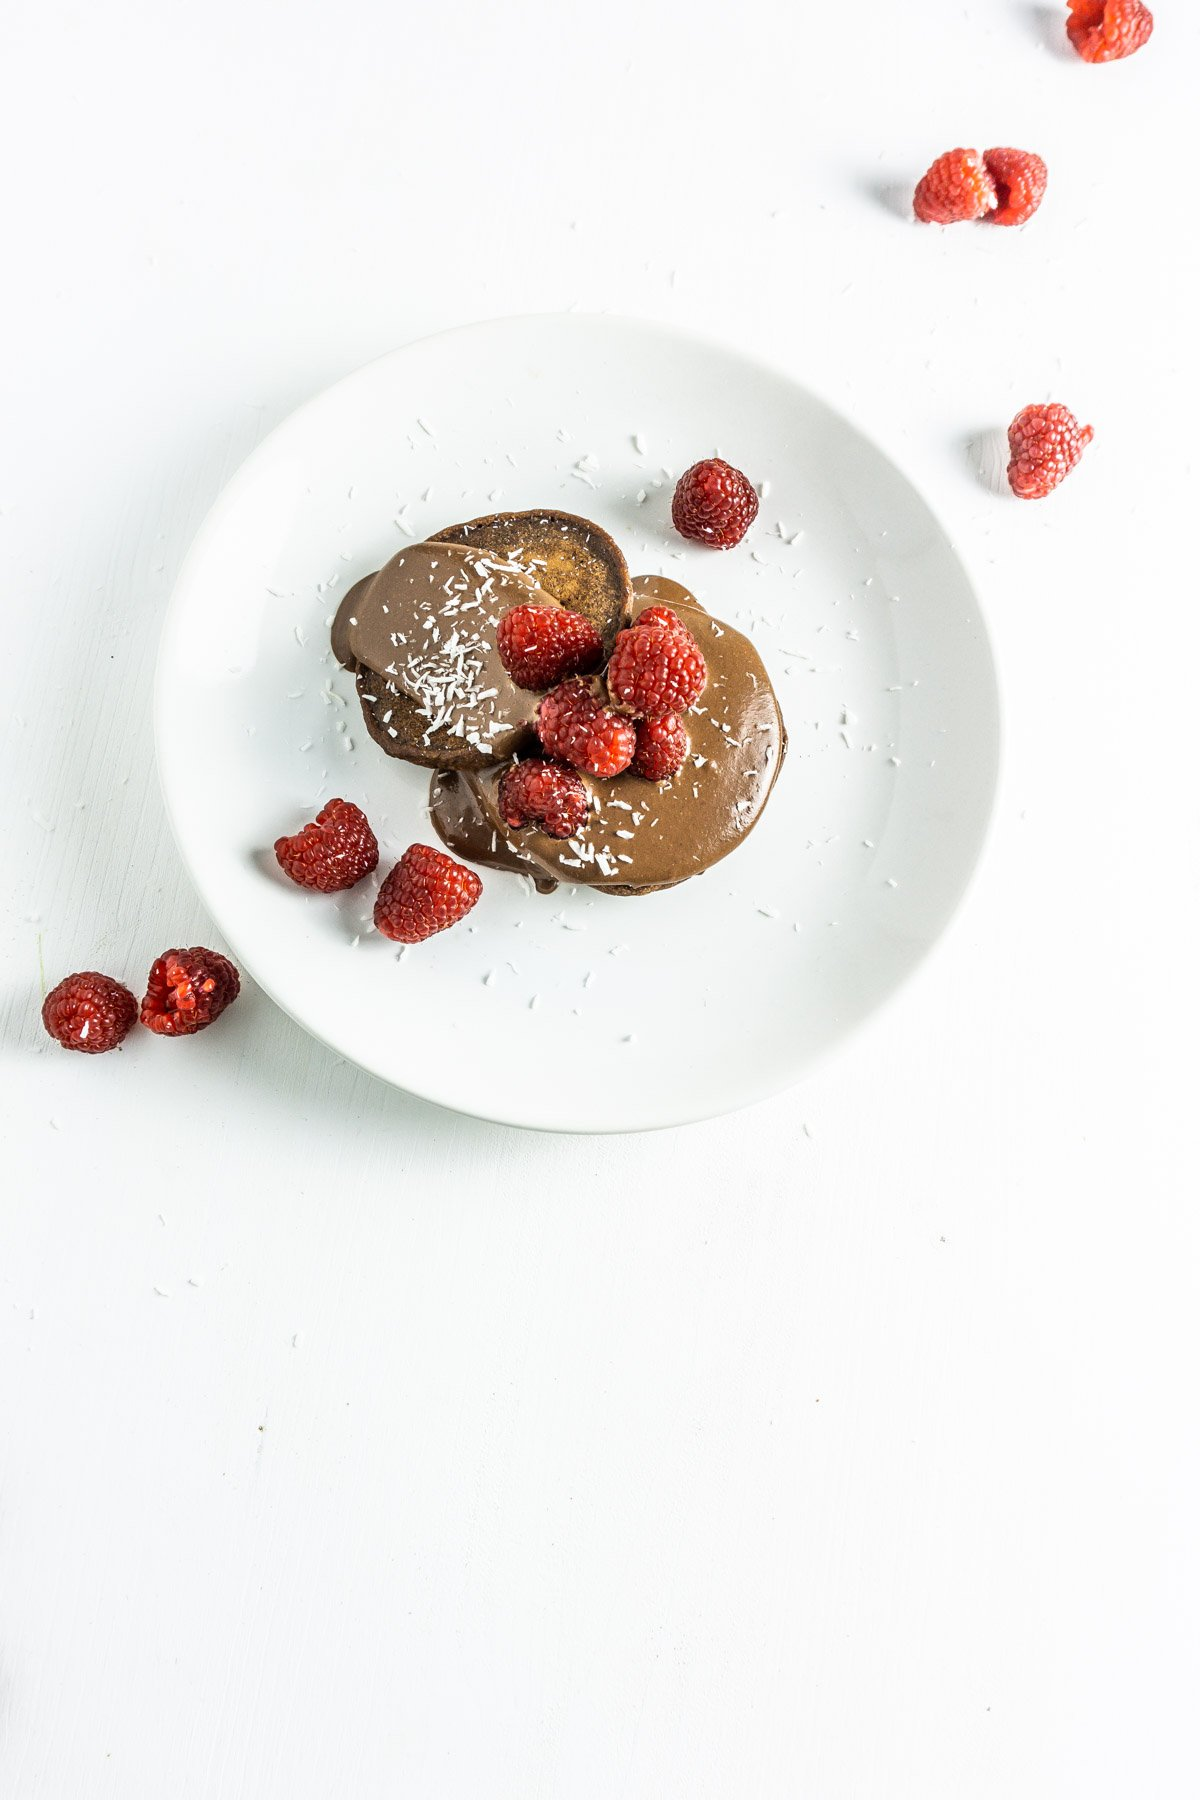 Chocolate banana pancakes with a chocolate and hazelnut sauce on a plate with raspberries